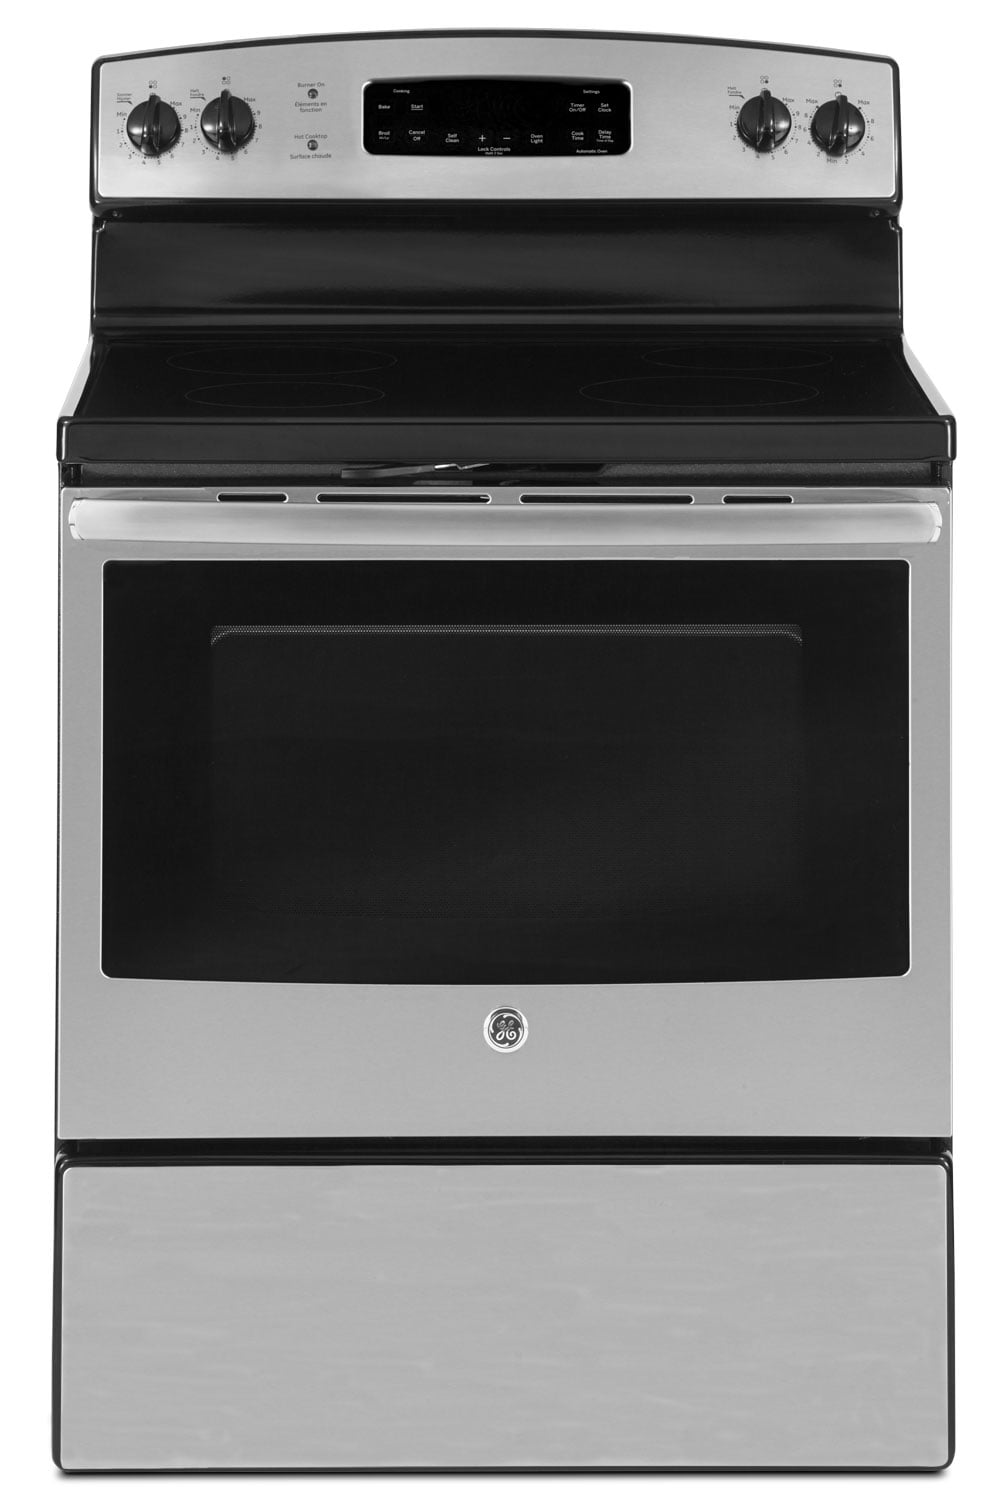 Cooking Products - GE 5.0 Cu. Ft. Freestanding Smooth-Top Electric Range - Stainless Steel